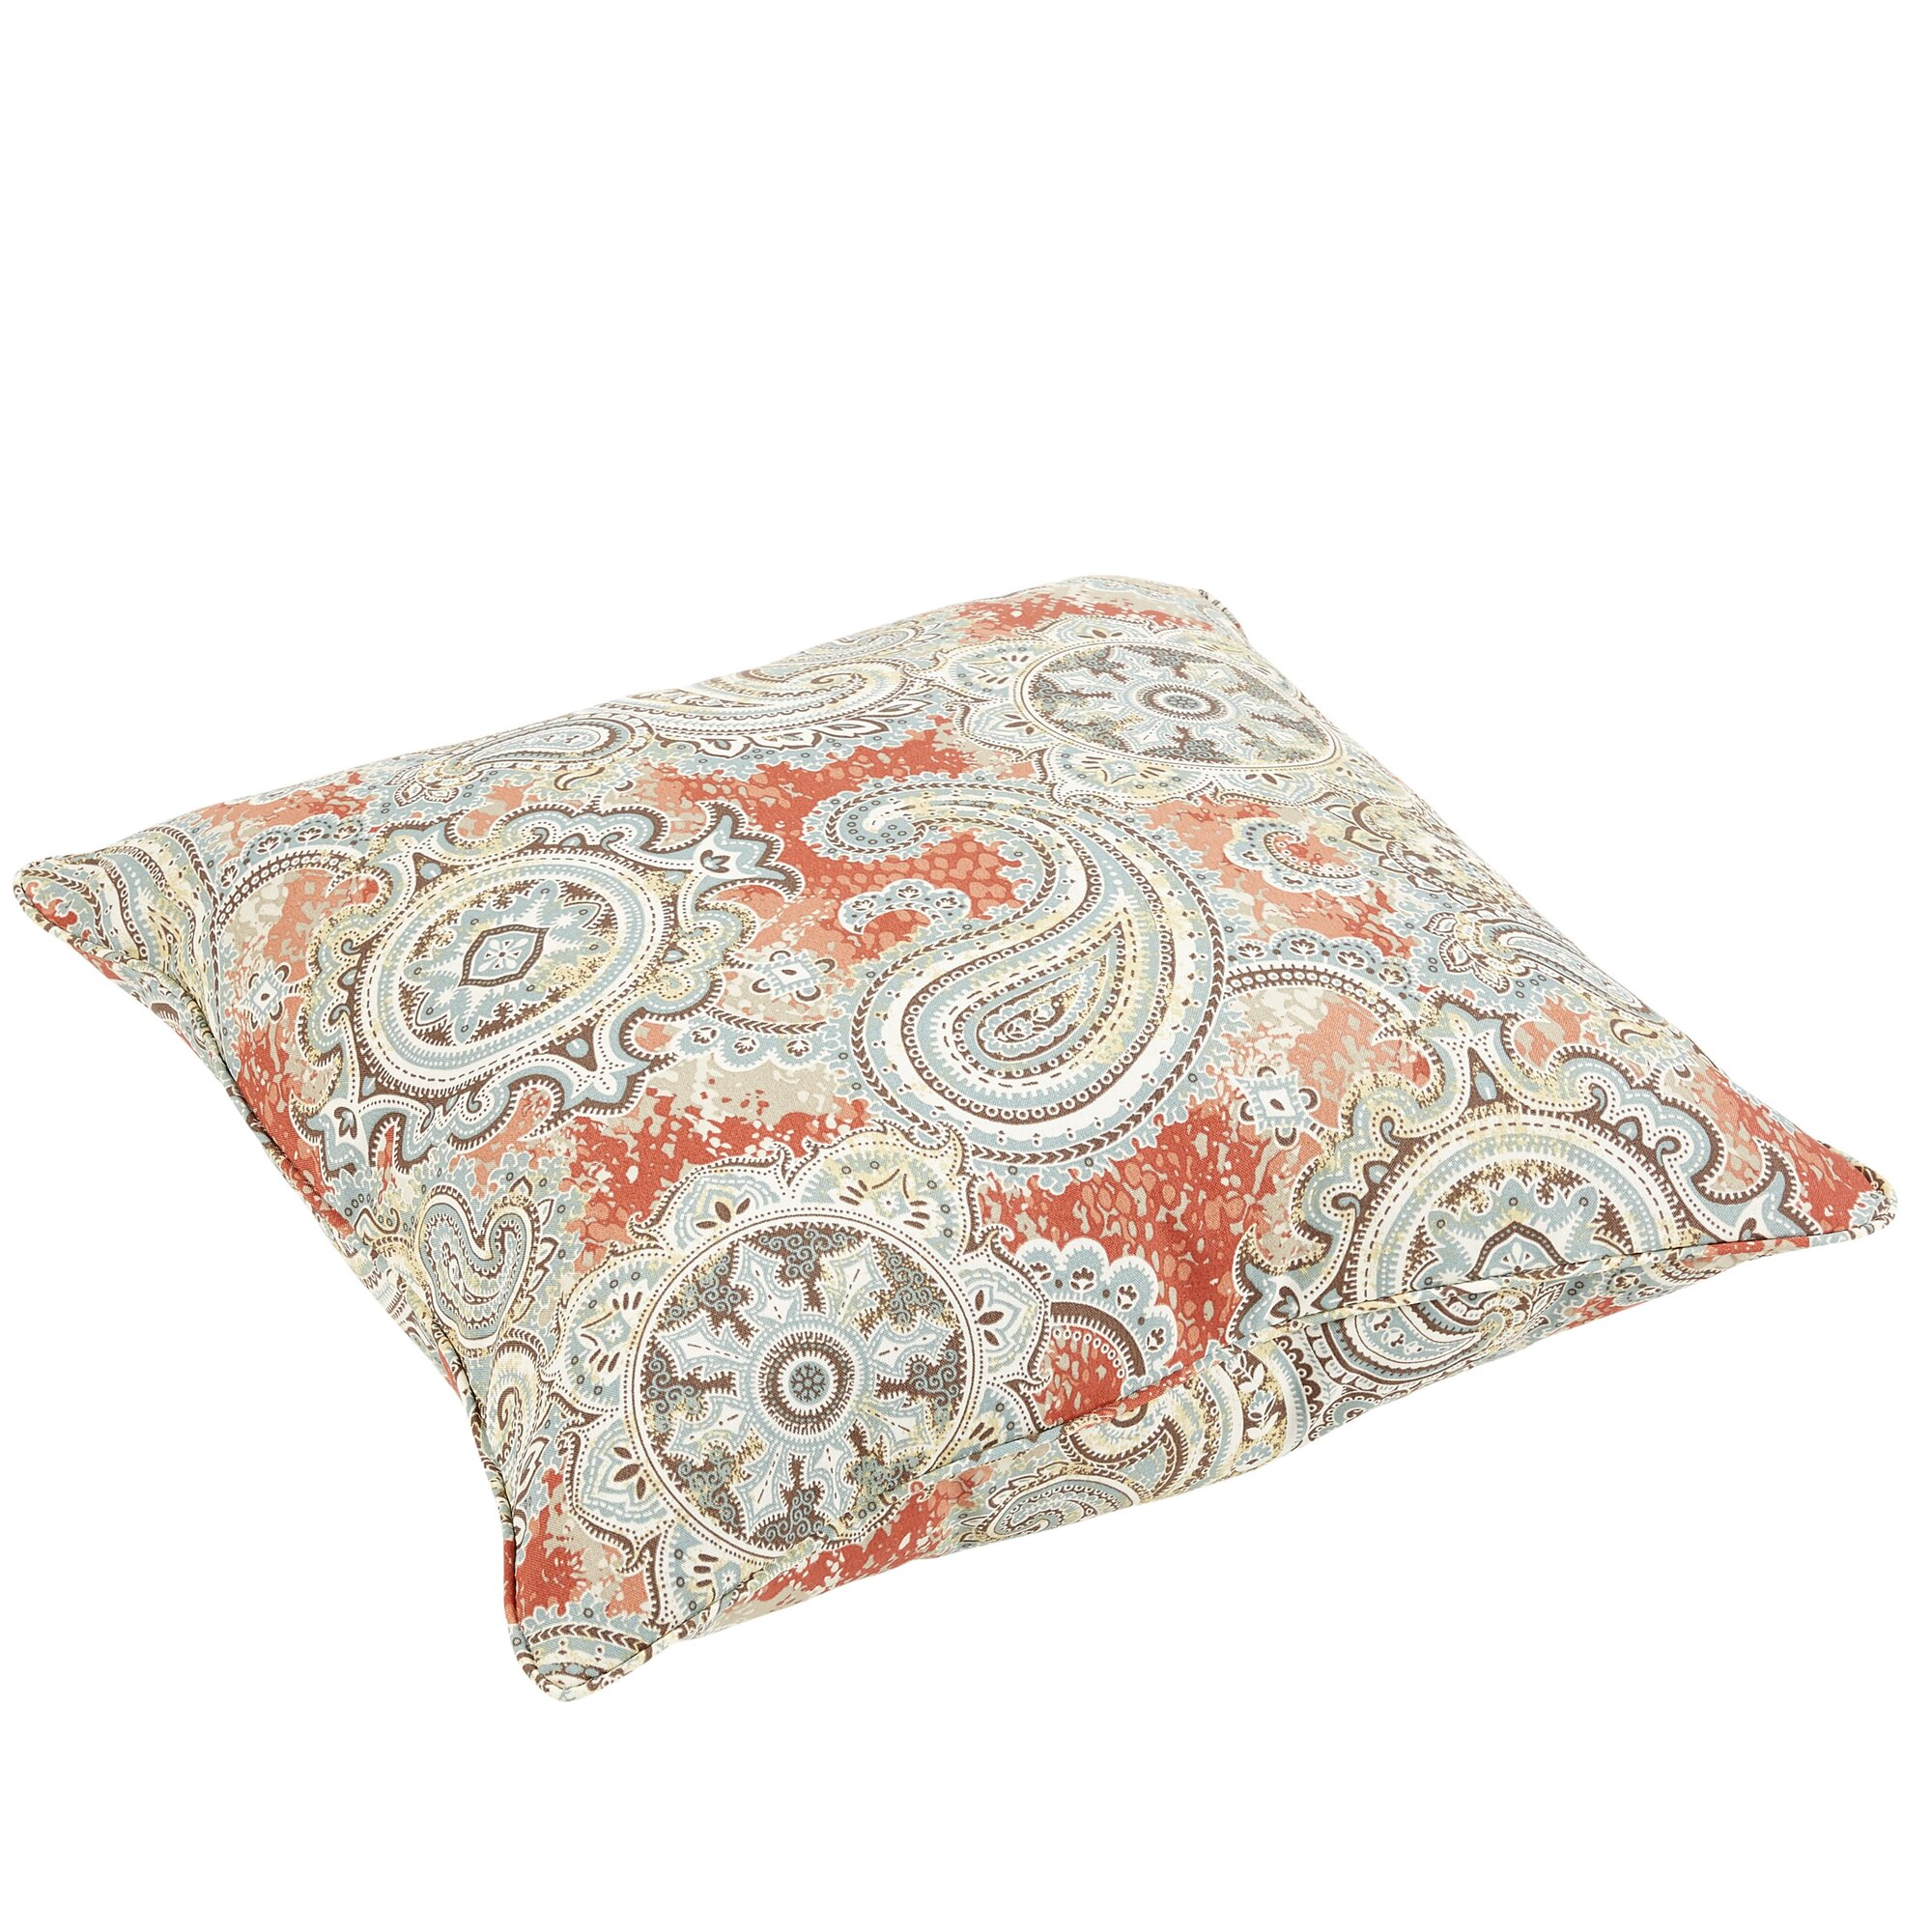 Darby Home Co Aravale Paisley Indoor/Outdoor Floor Pillow Wayfair.ca